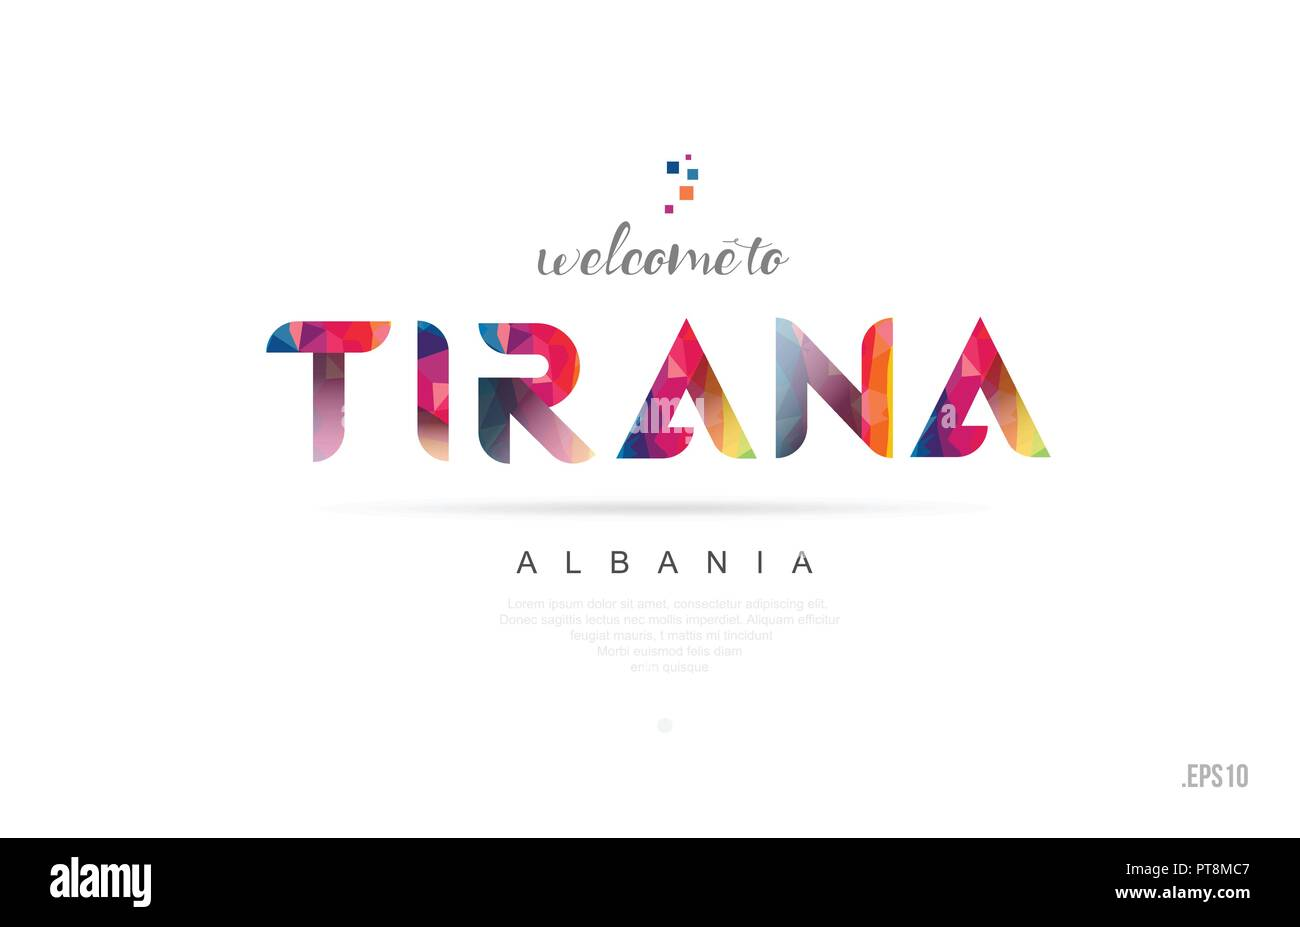 Welcome to tirana albania card and letter design in colorful rainbow color and typographic icon design - Stock Vector